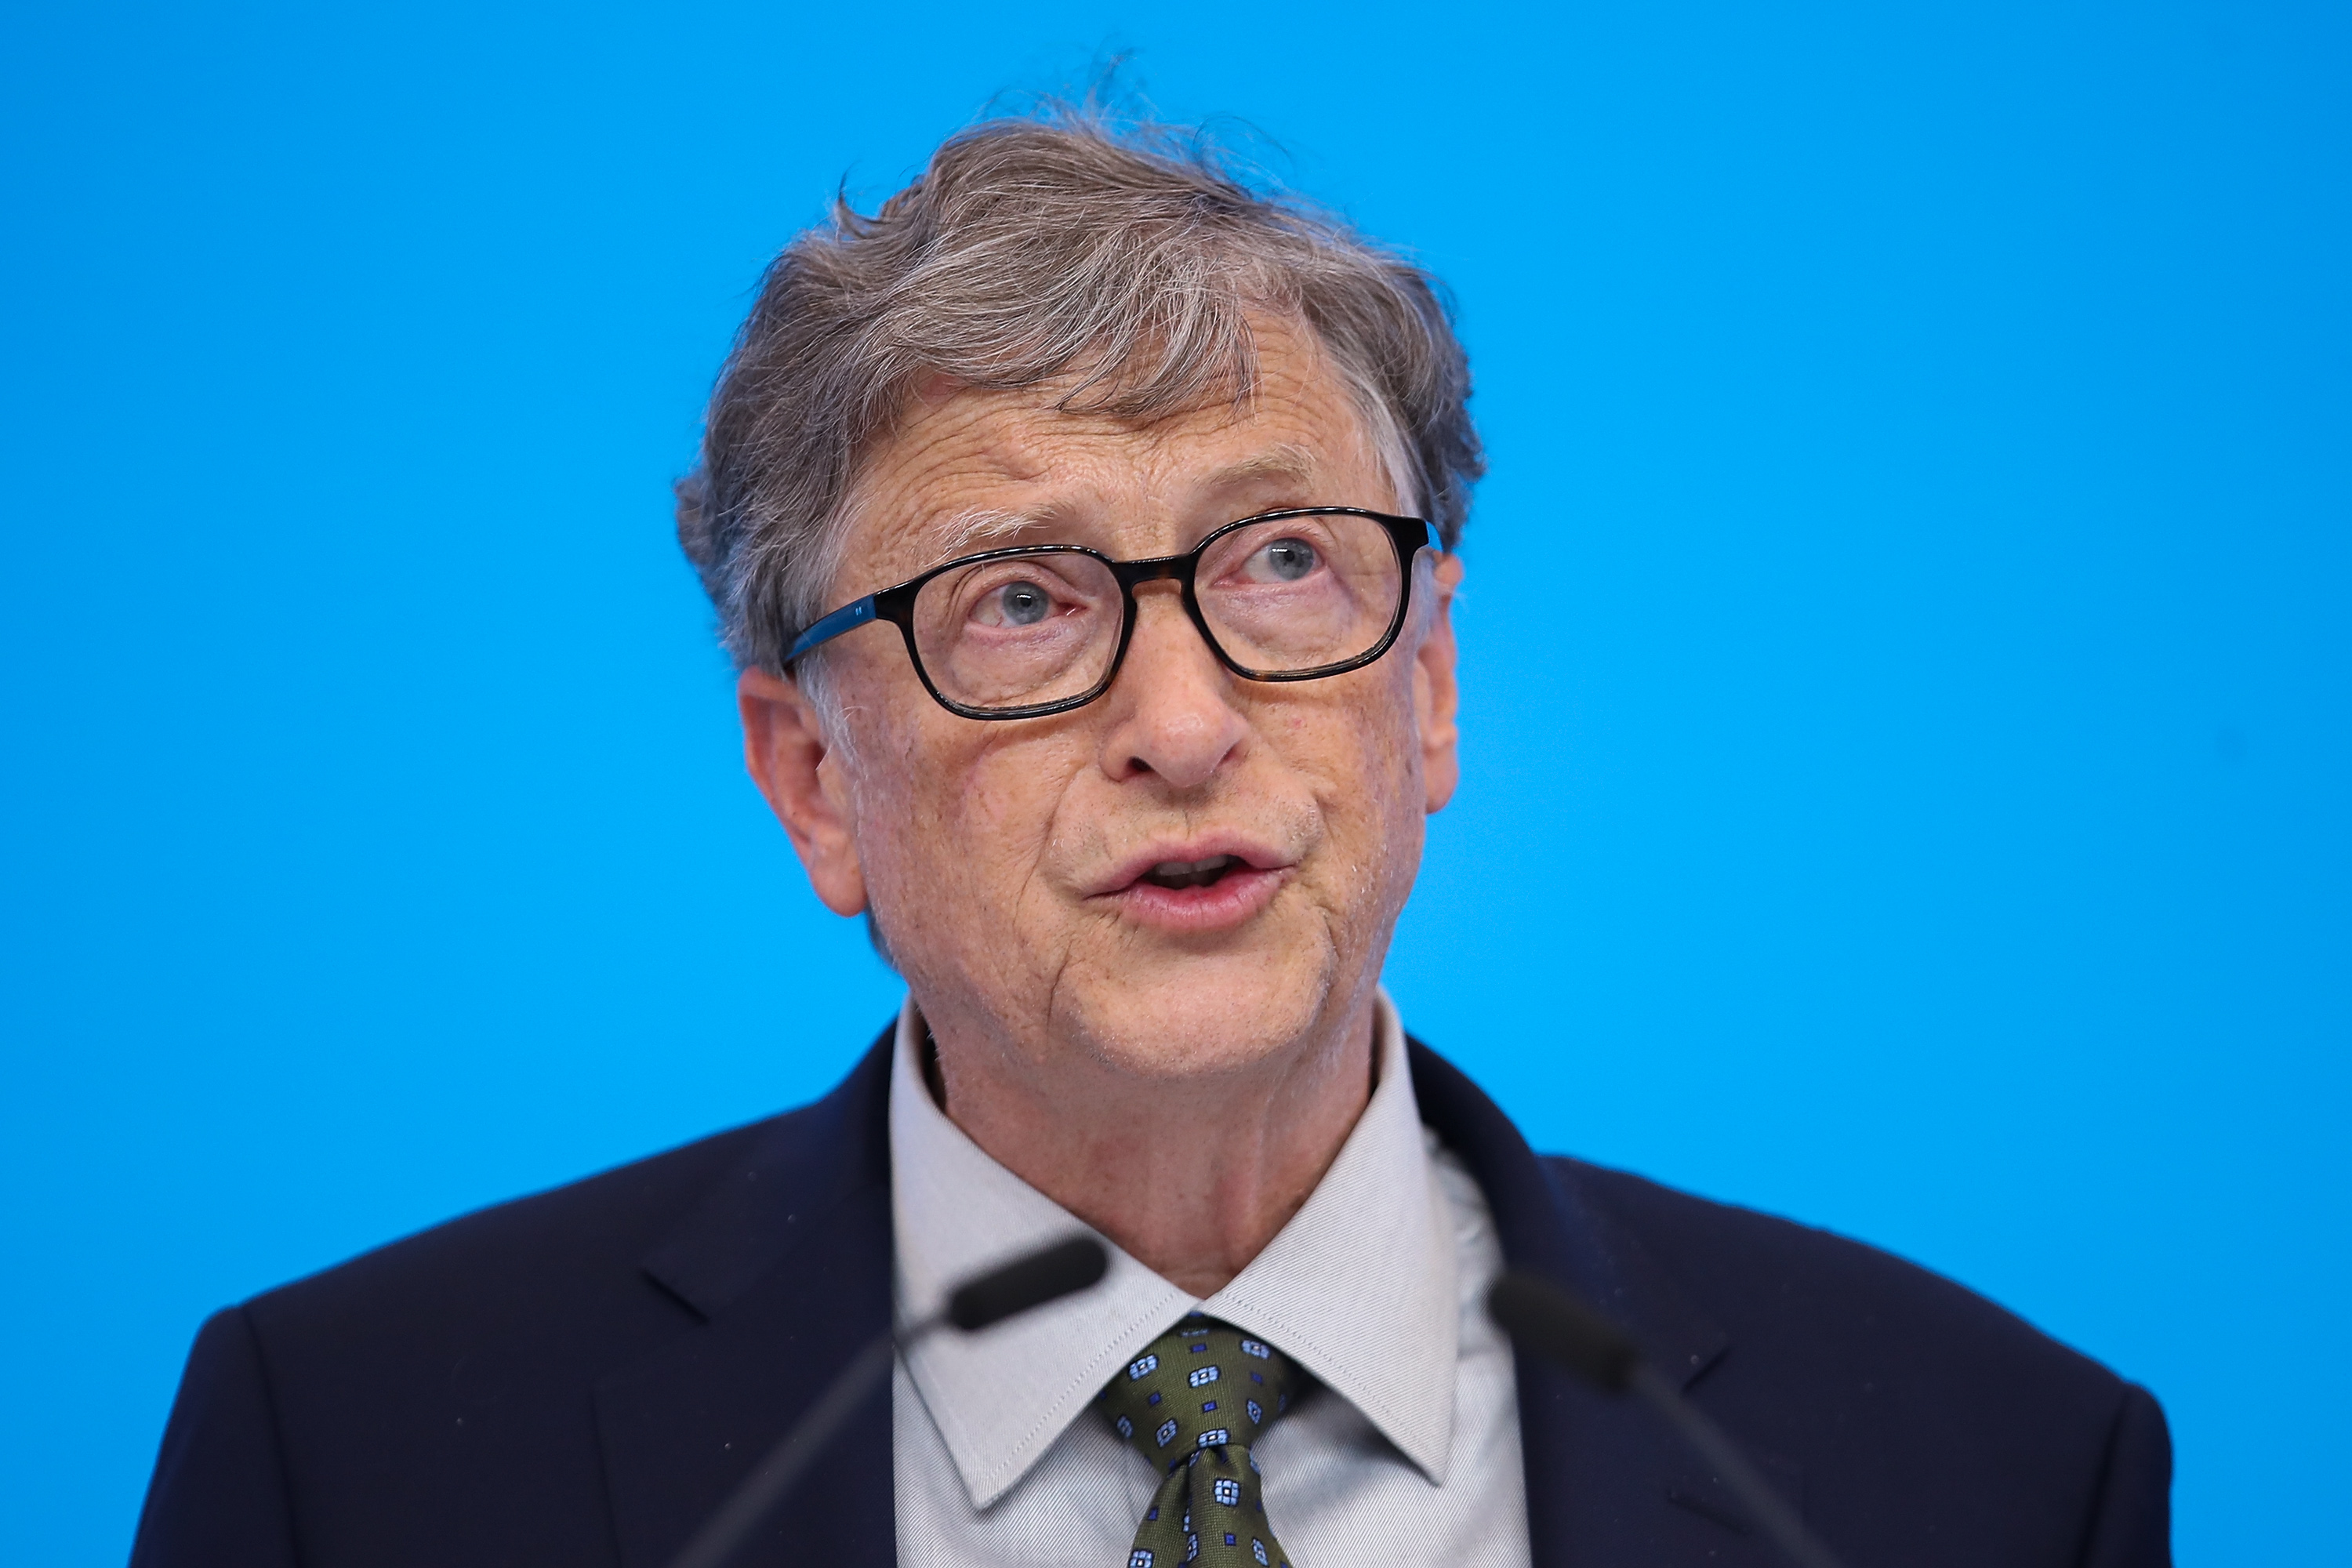 Bill Gates says ditching fossil fuel stocks has 'zero' impact on climate change